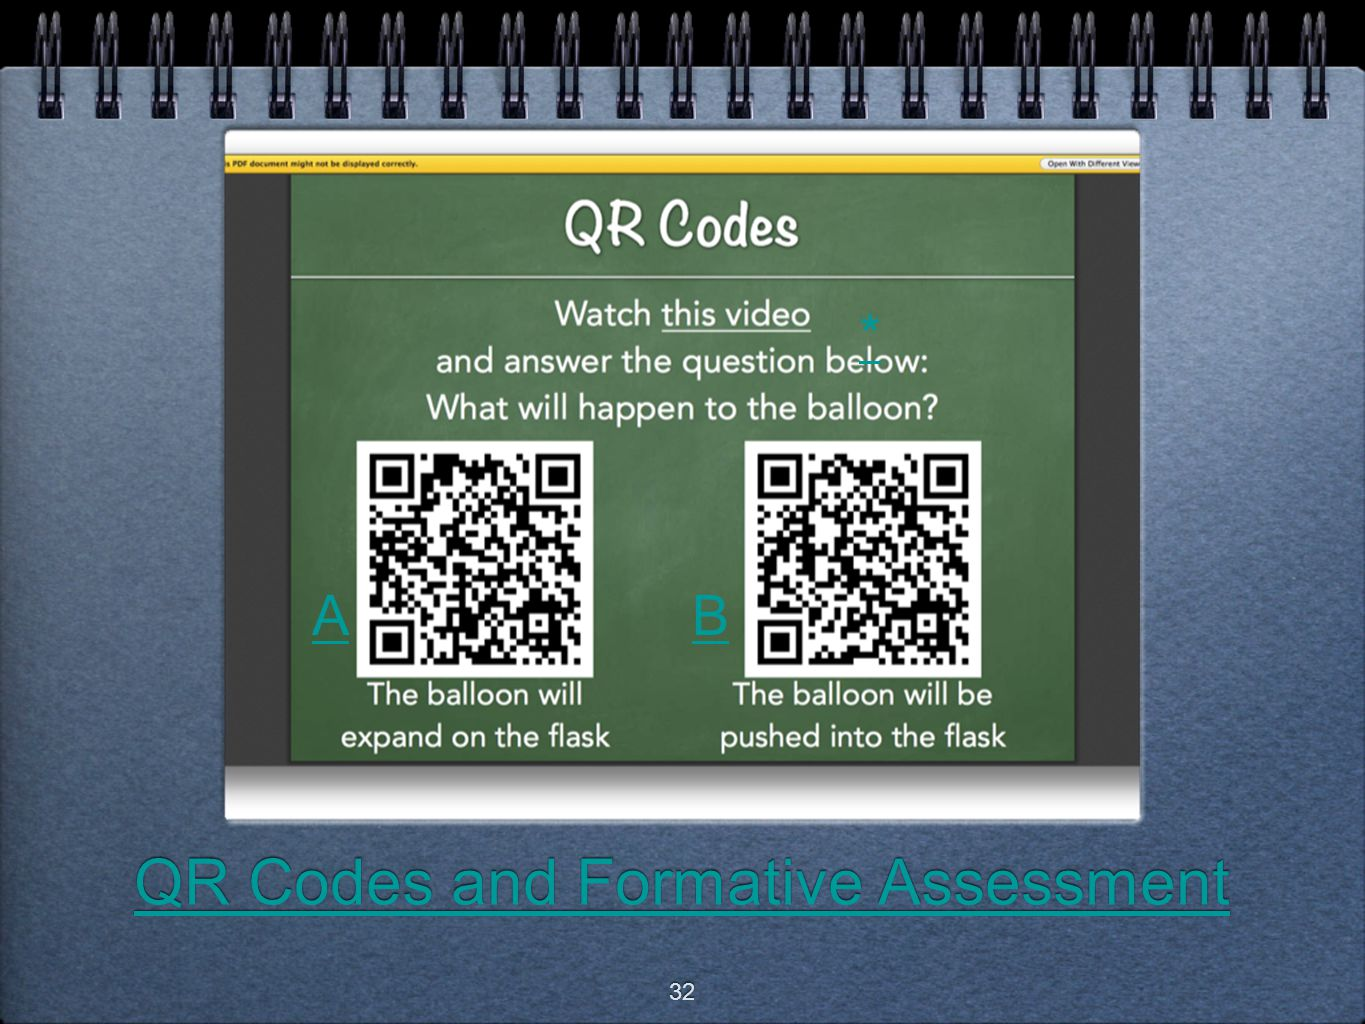 QR Codes and Formative Assessment